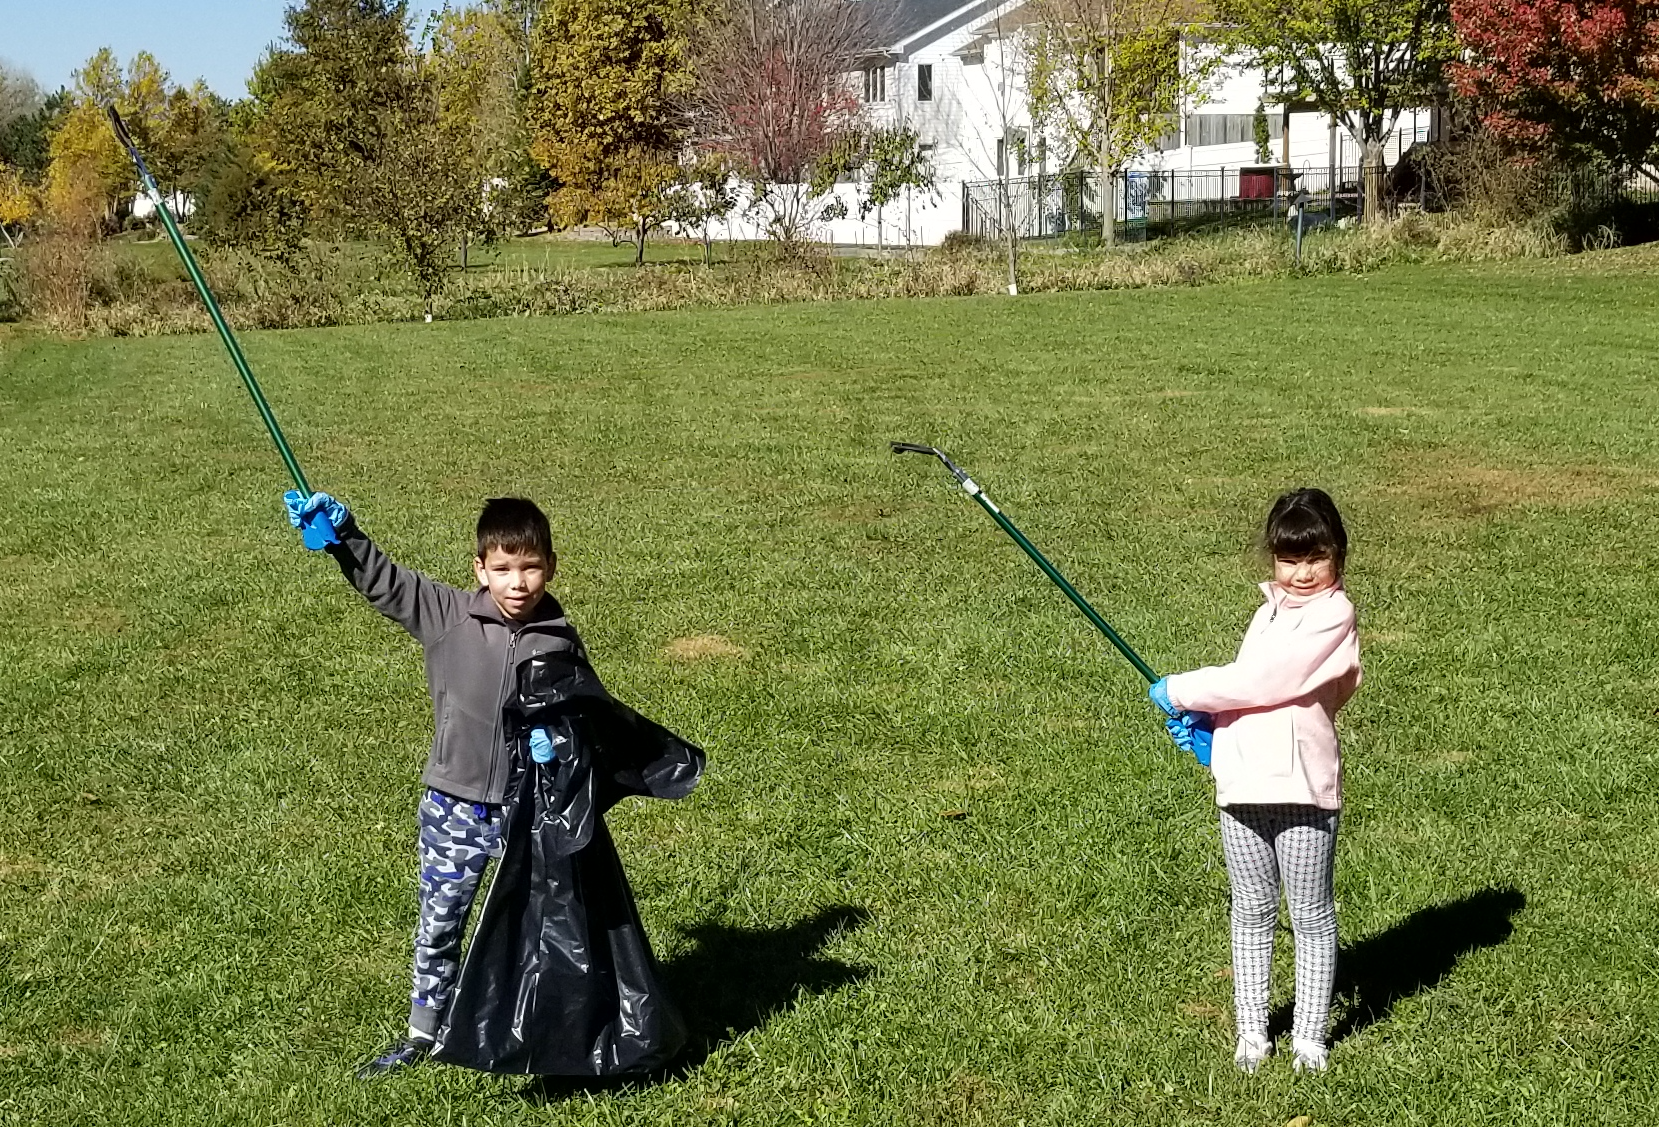 Fall Clean-Up Oct. 12th